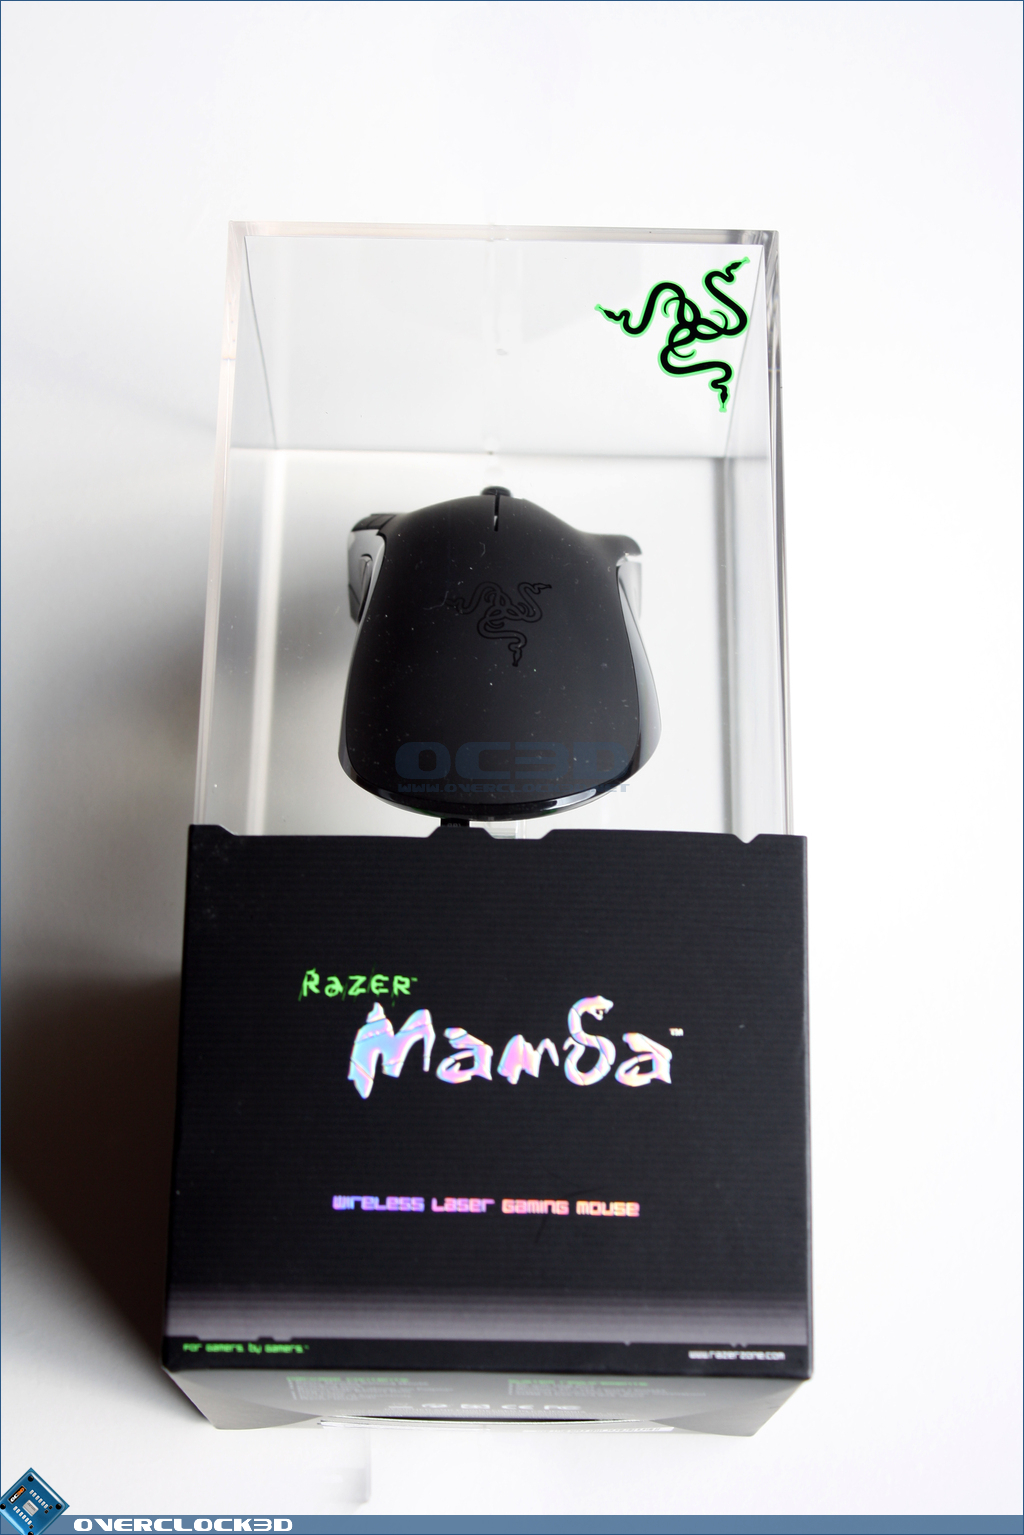 Razer Mamba Gaming Mouse Packaging Amp Accessories Input